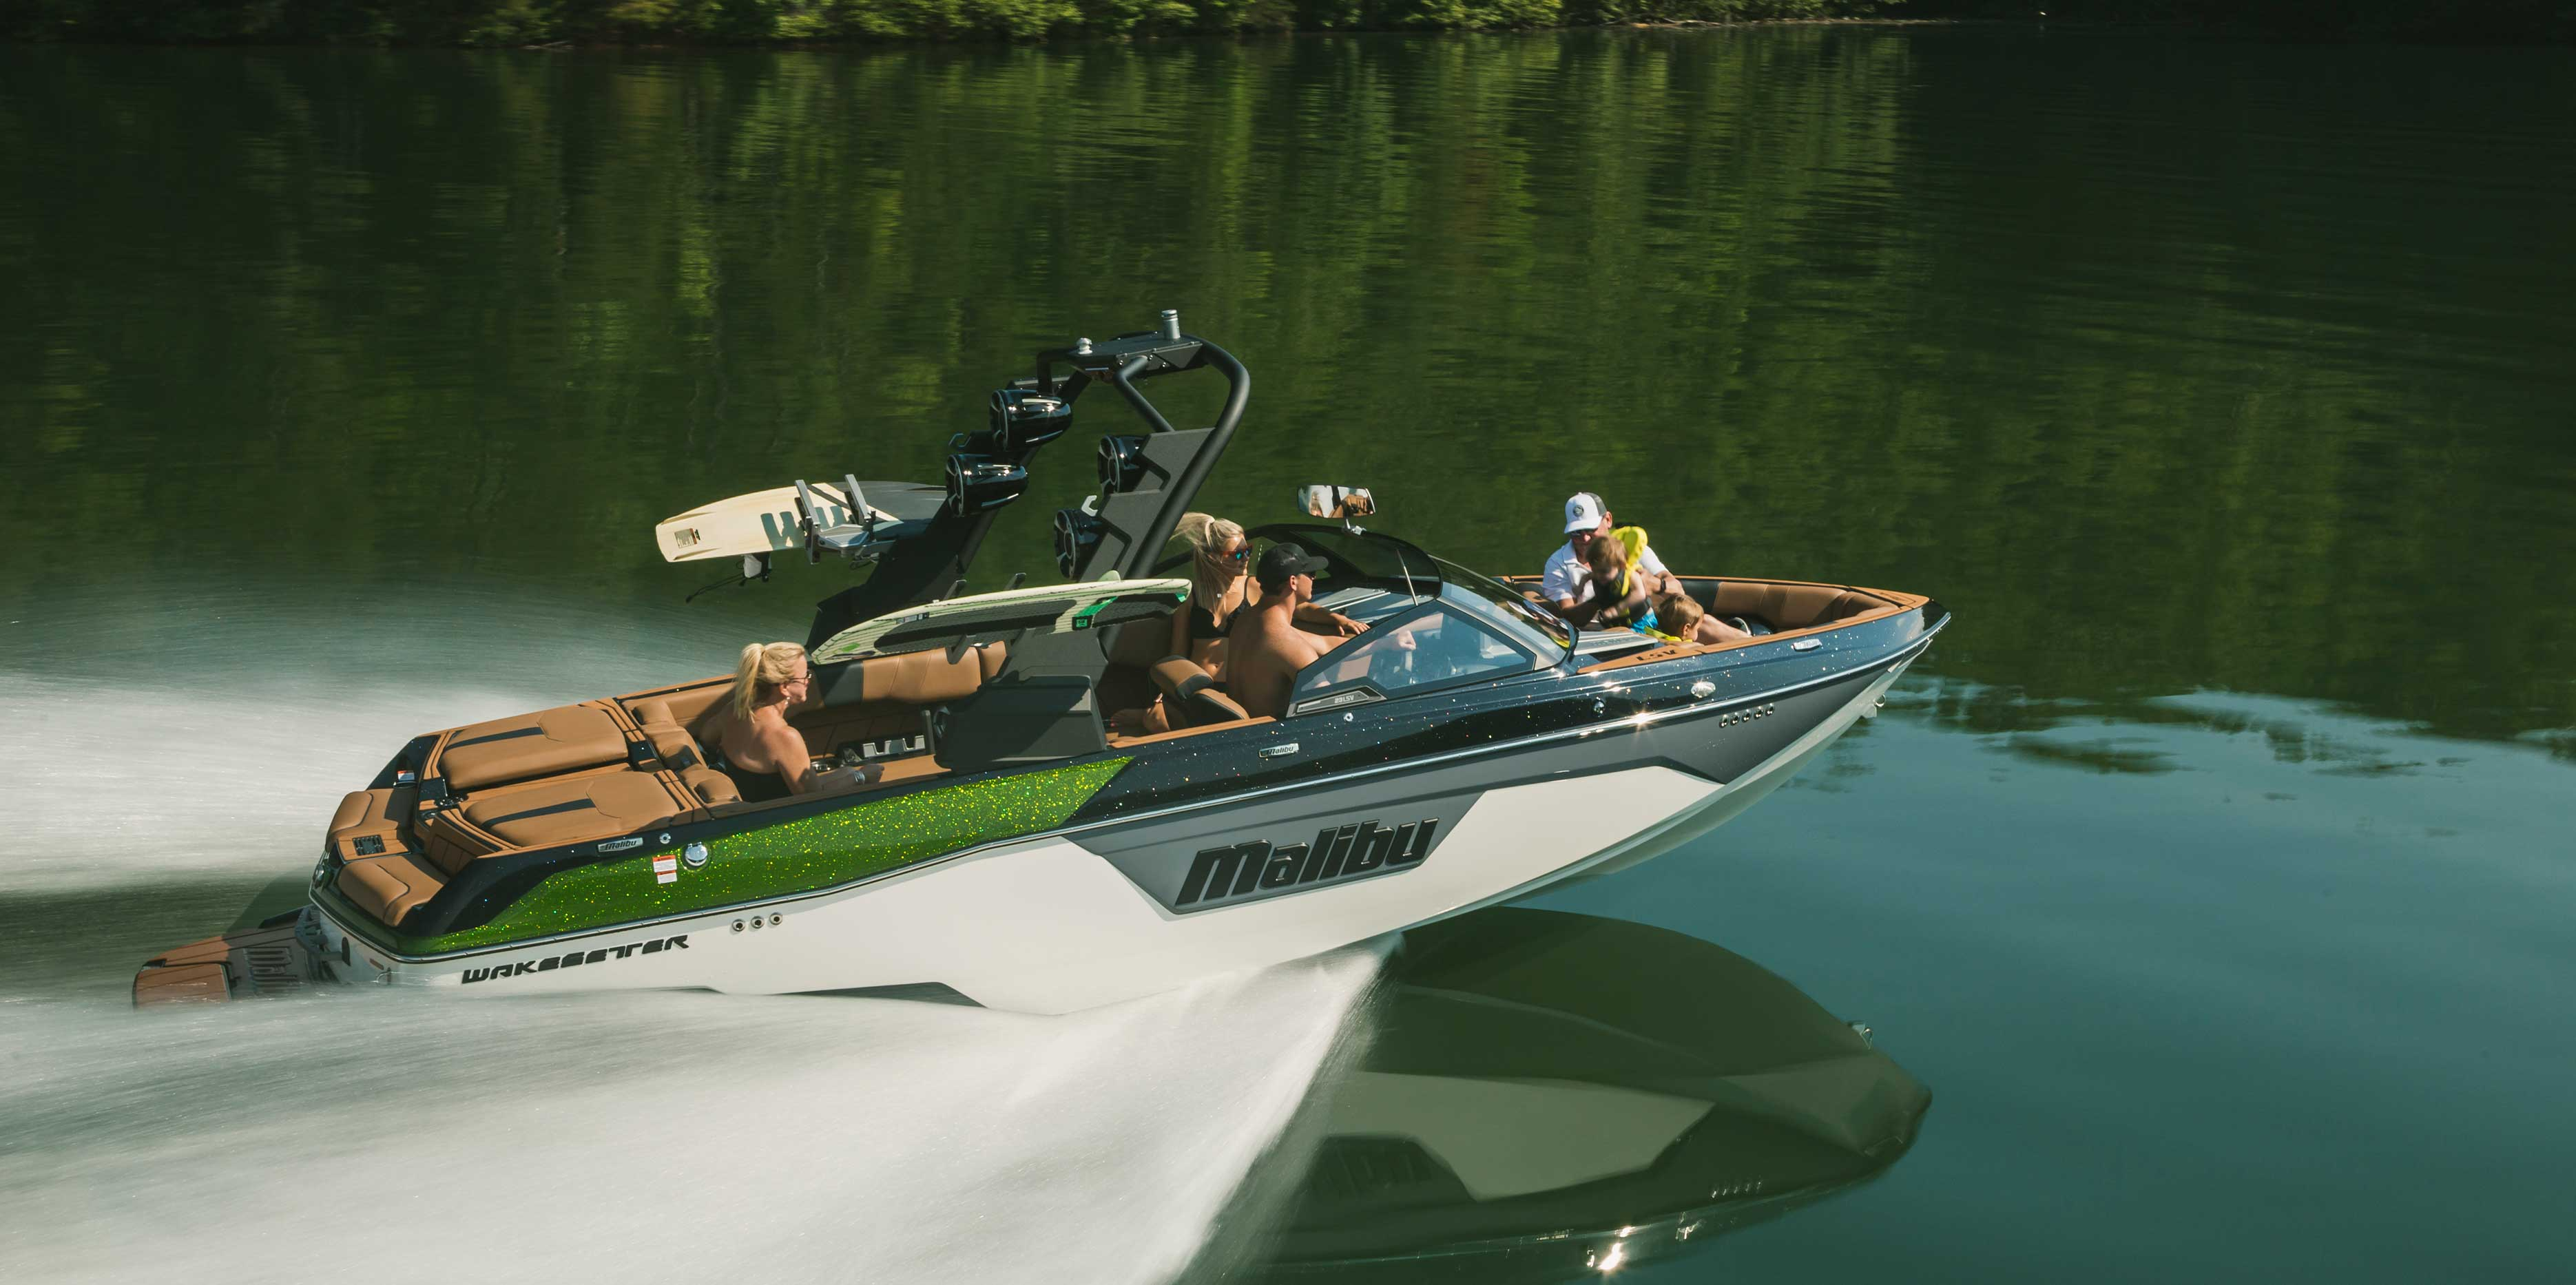 Malibu 23 LSV is Wakesurfing and Wakeboarding Boat of the Year